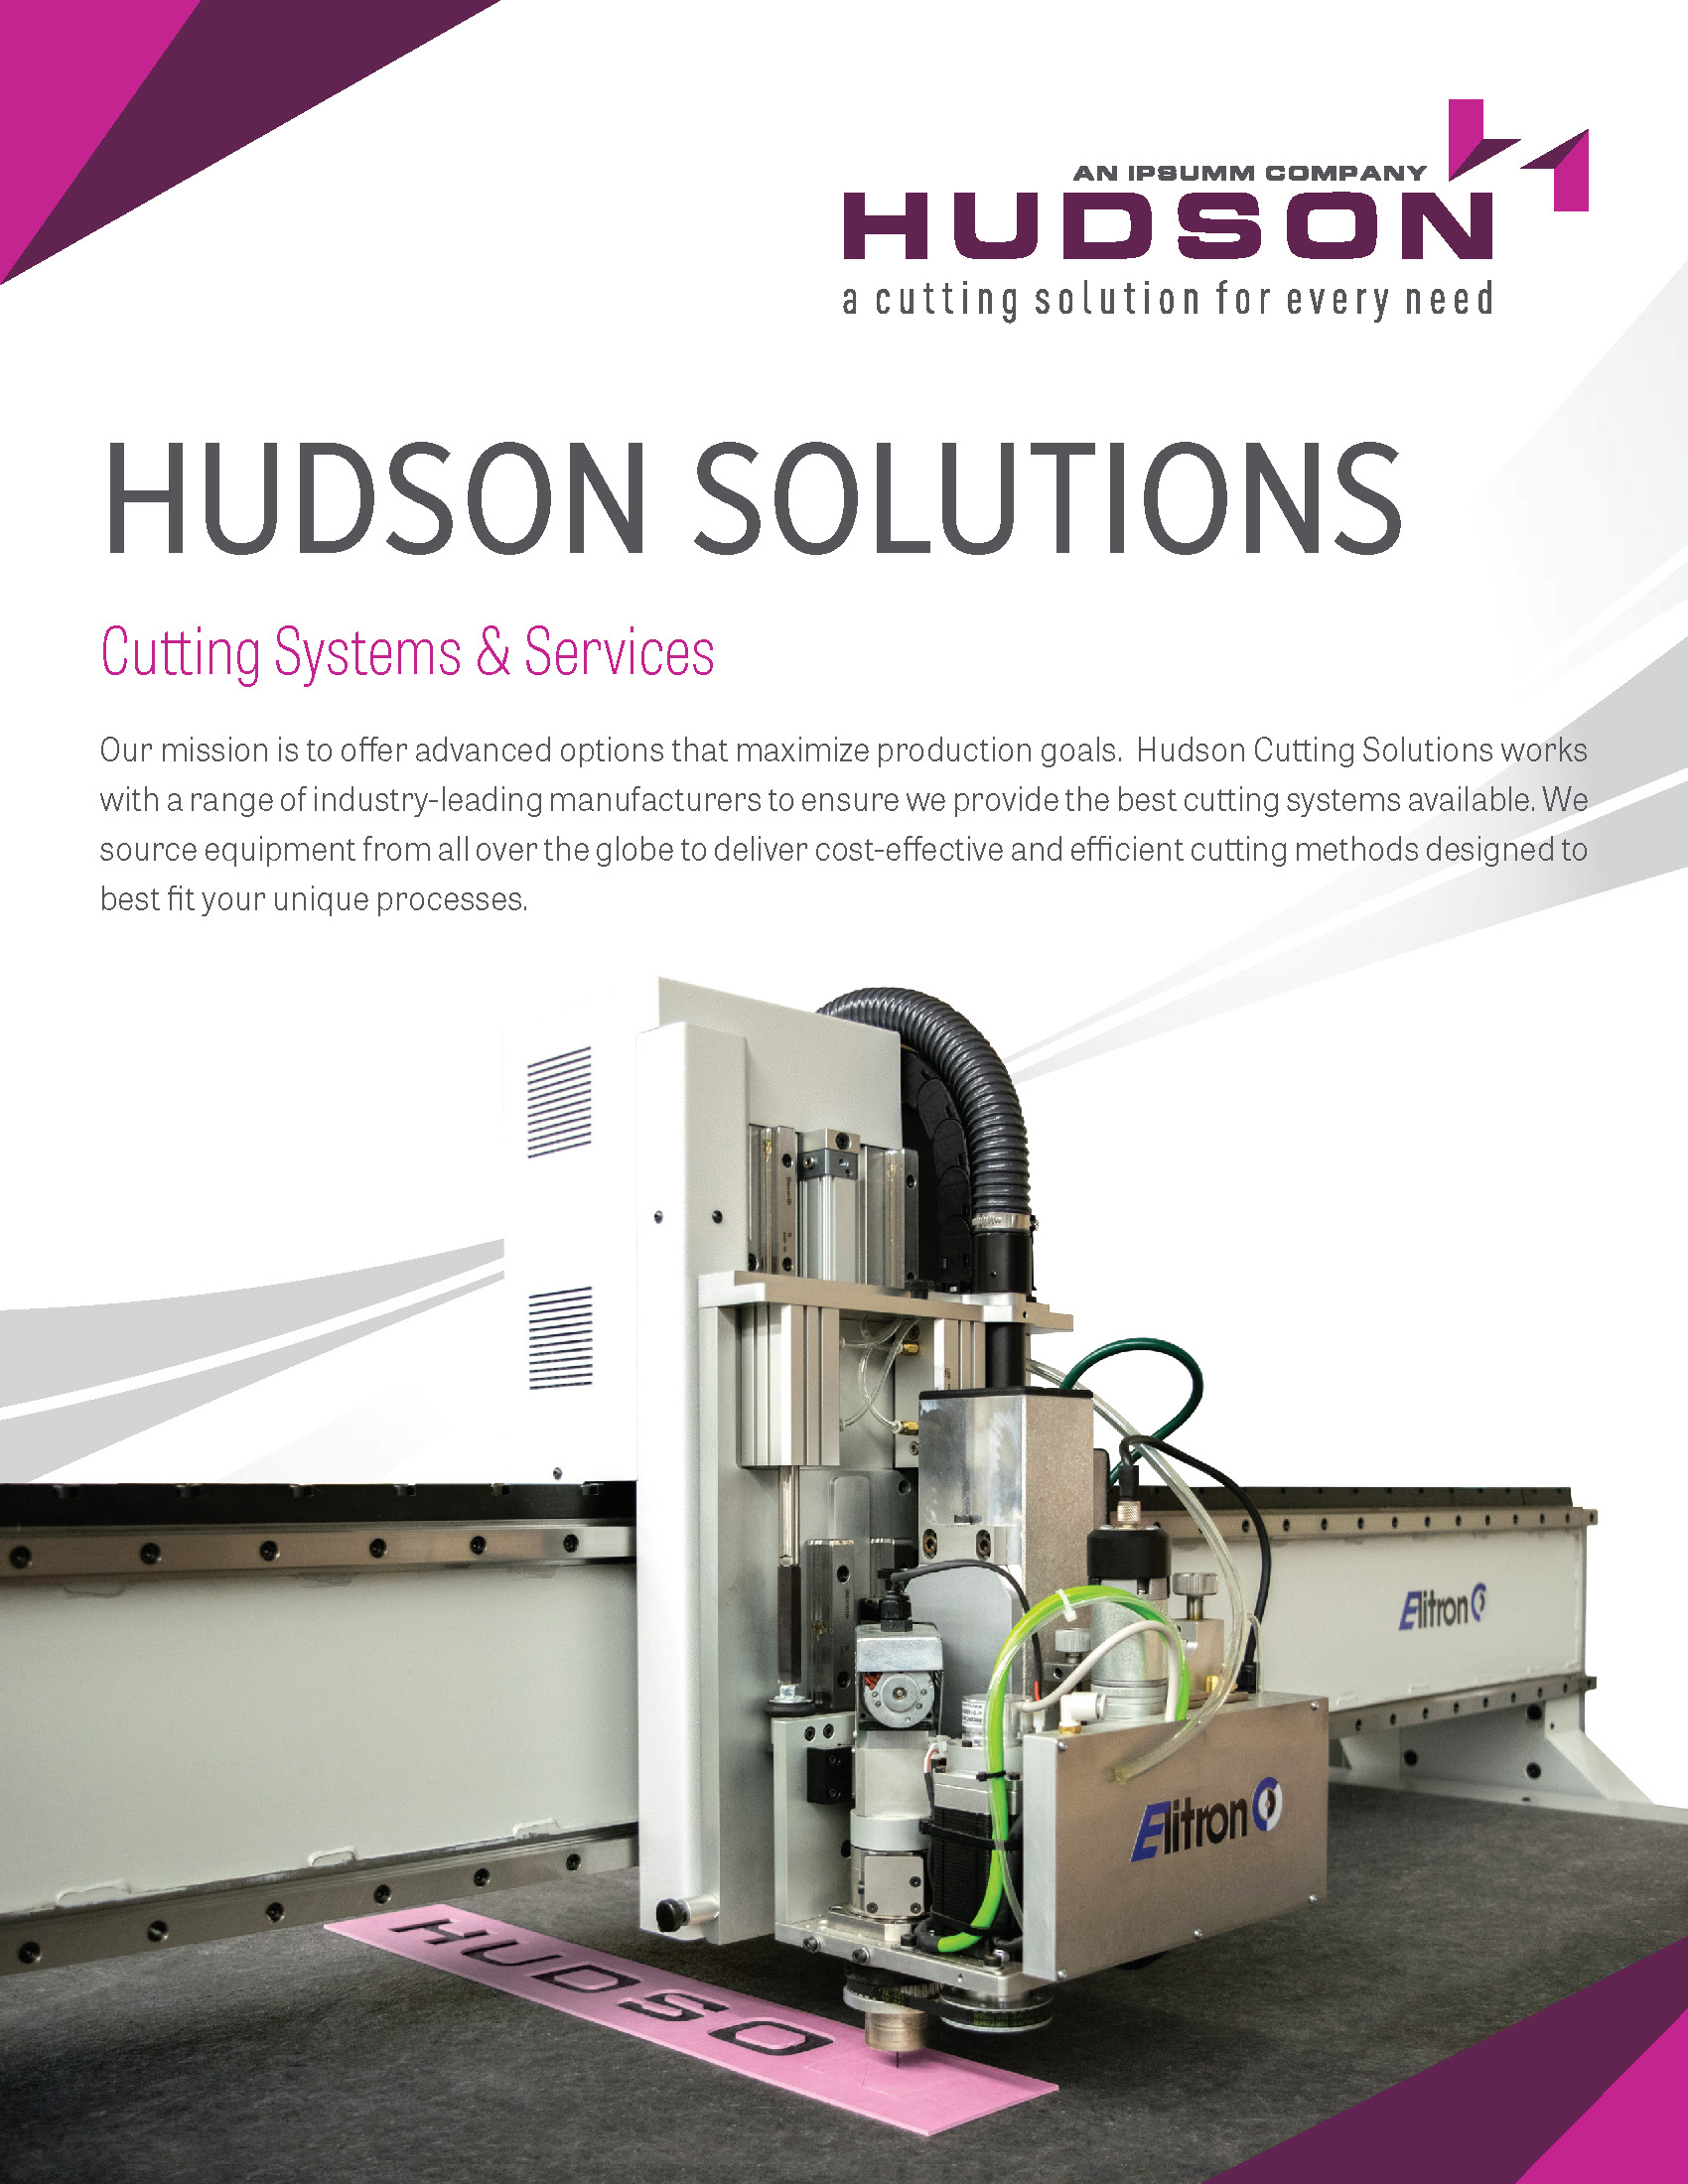 Hudson Solutions PROOF 6-9-15 FINAL_Page_1.jpg